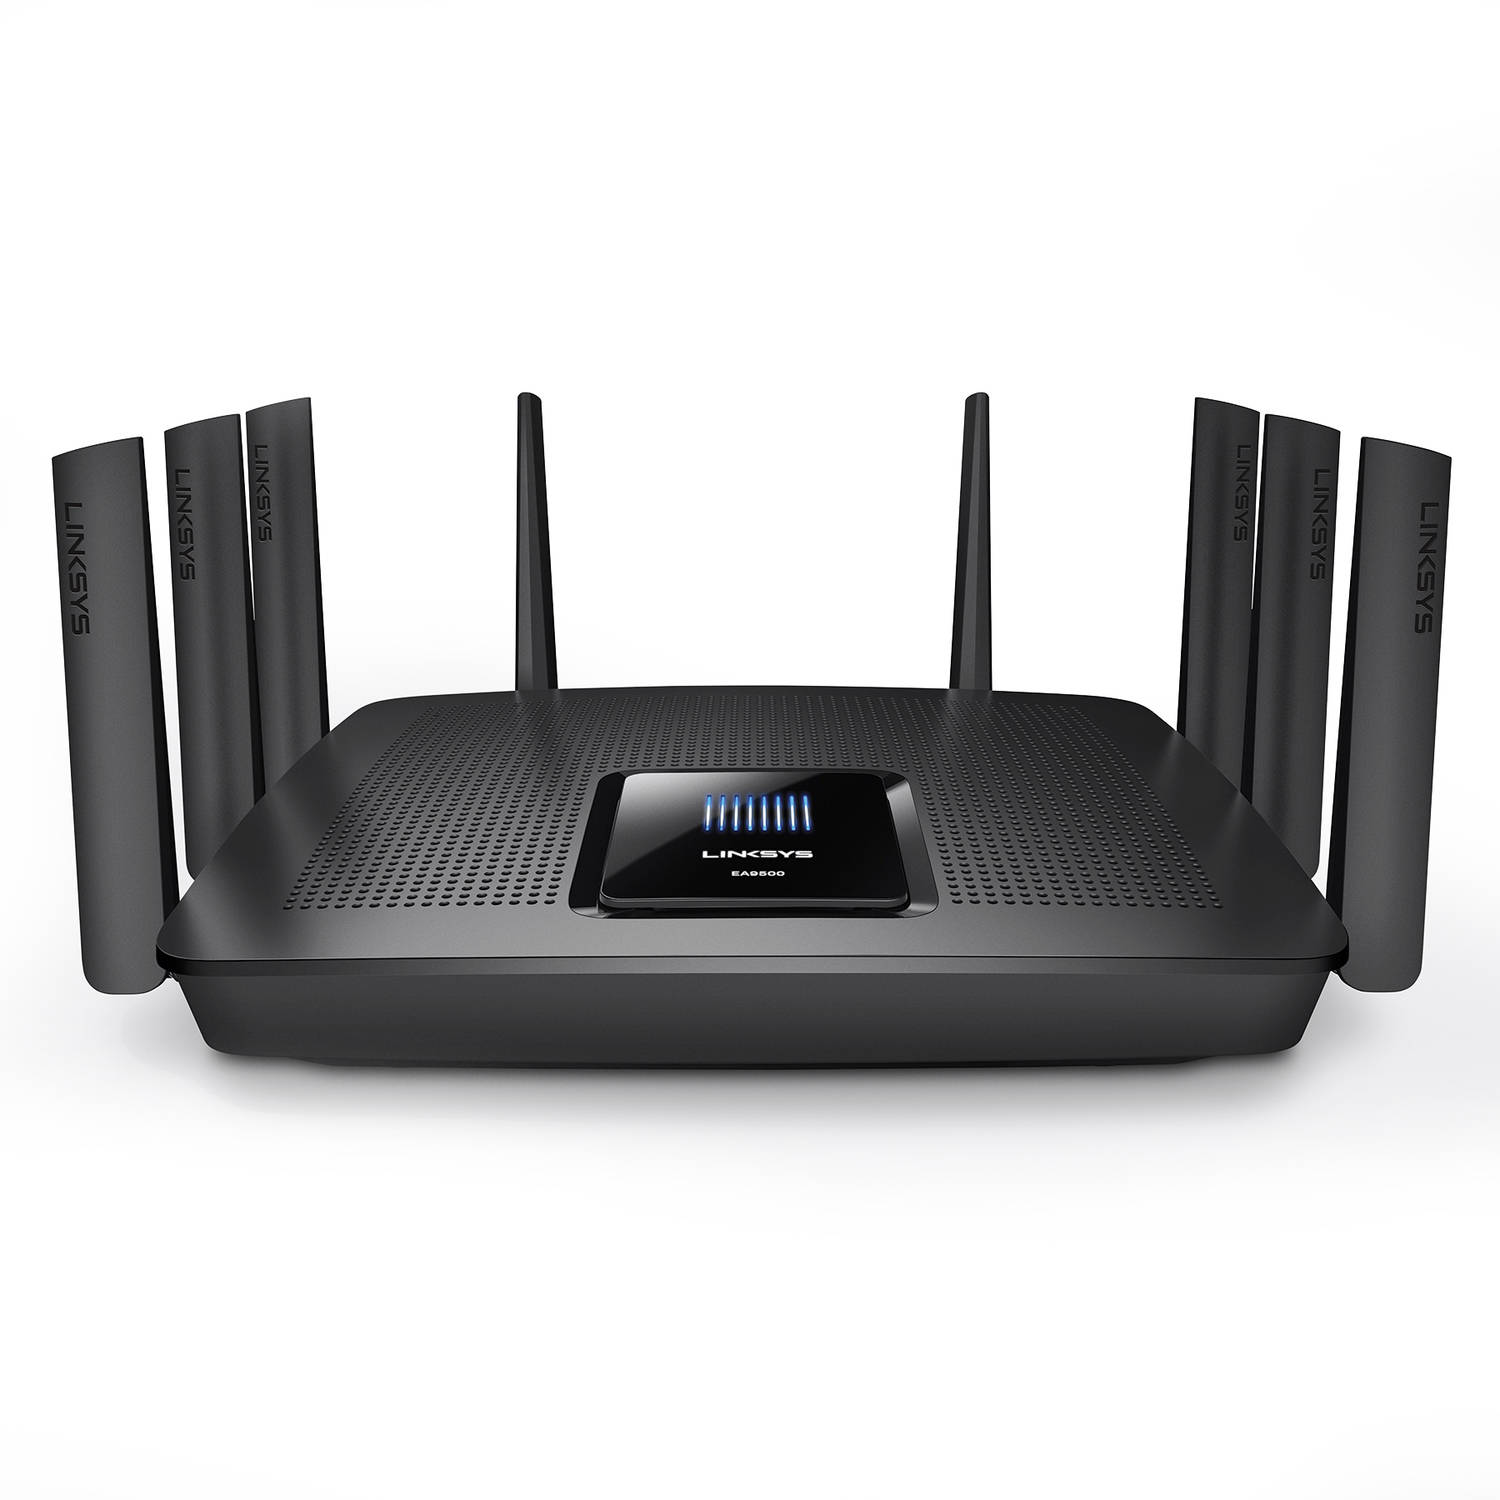 Linksys Max-Stream EA9500 IEEE 802.11ac Ethernet Wireless Router 2.40 GHz ISM Band 5 GHz UNII Band(8 x External) 5427.20... by Linksys